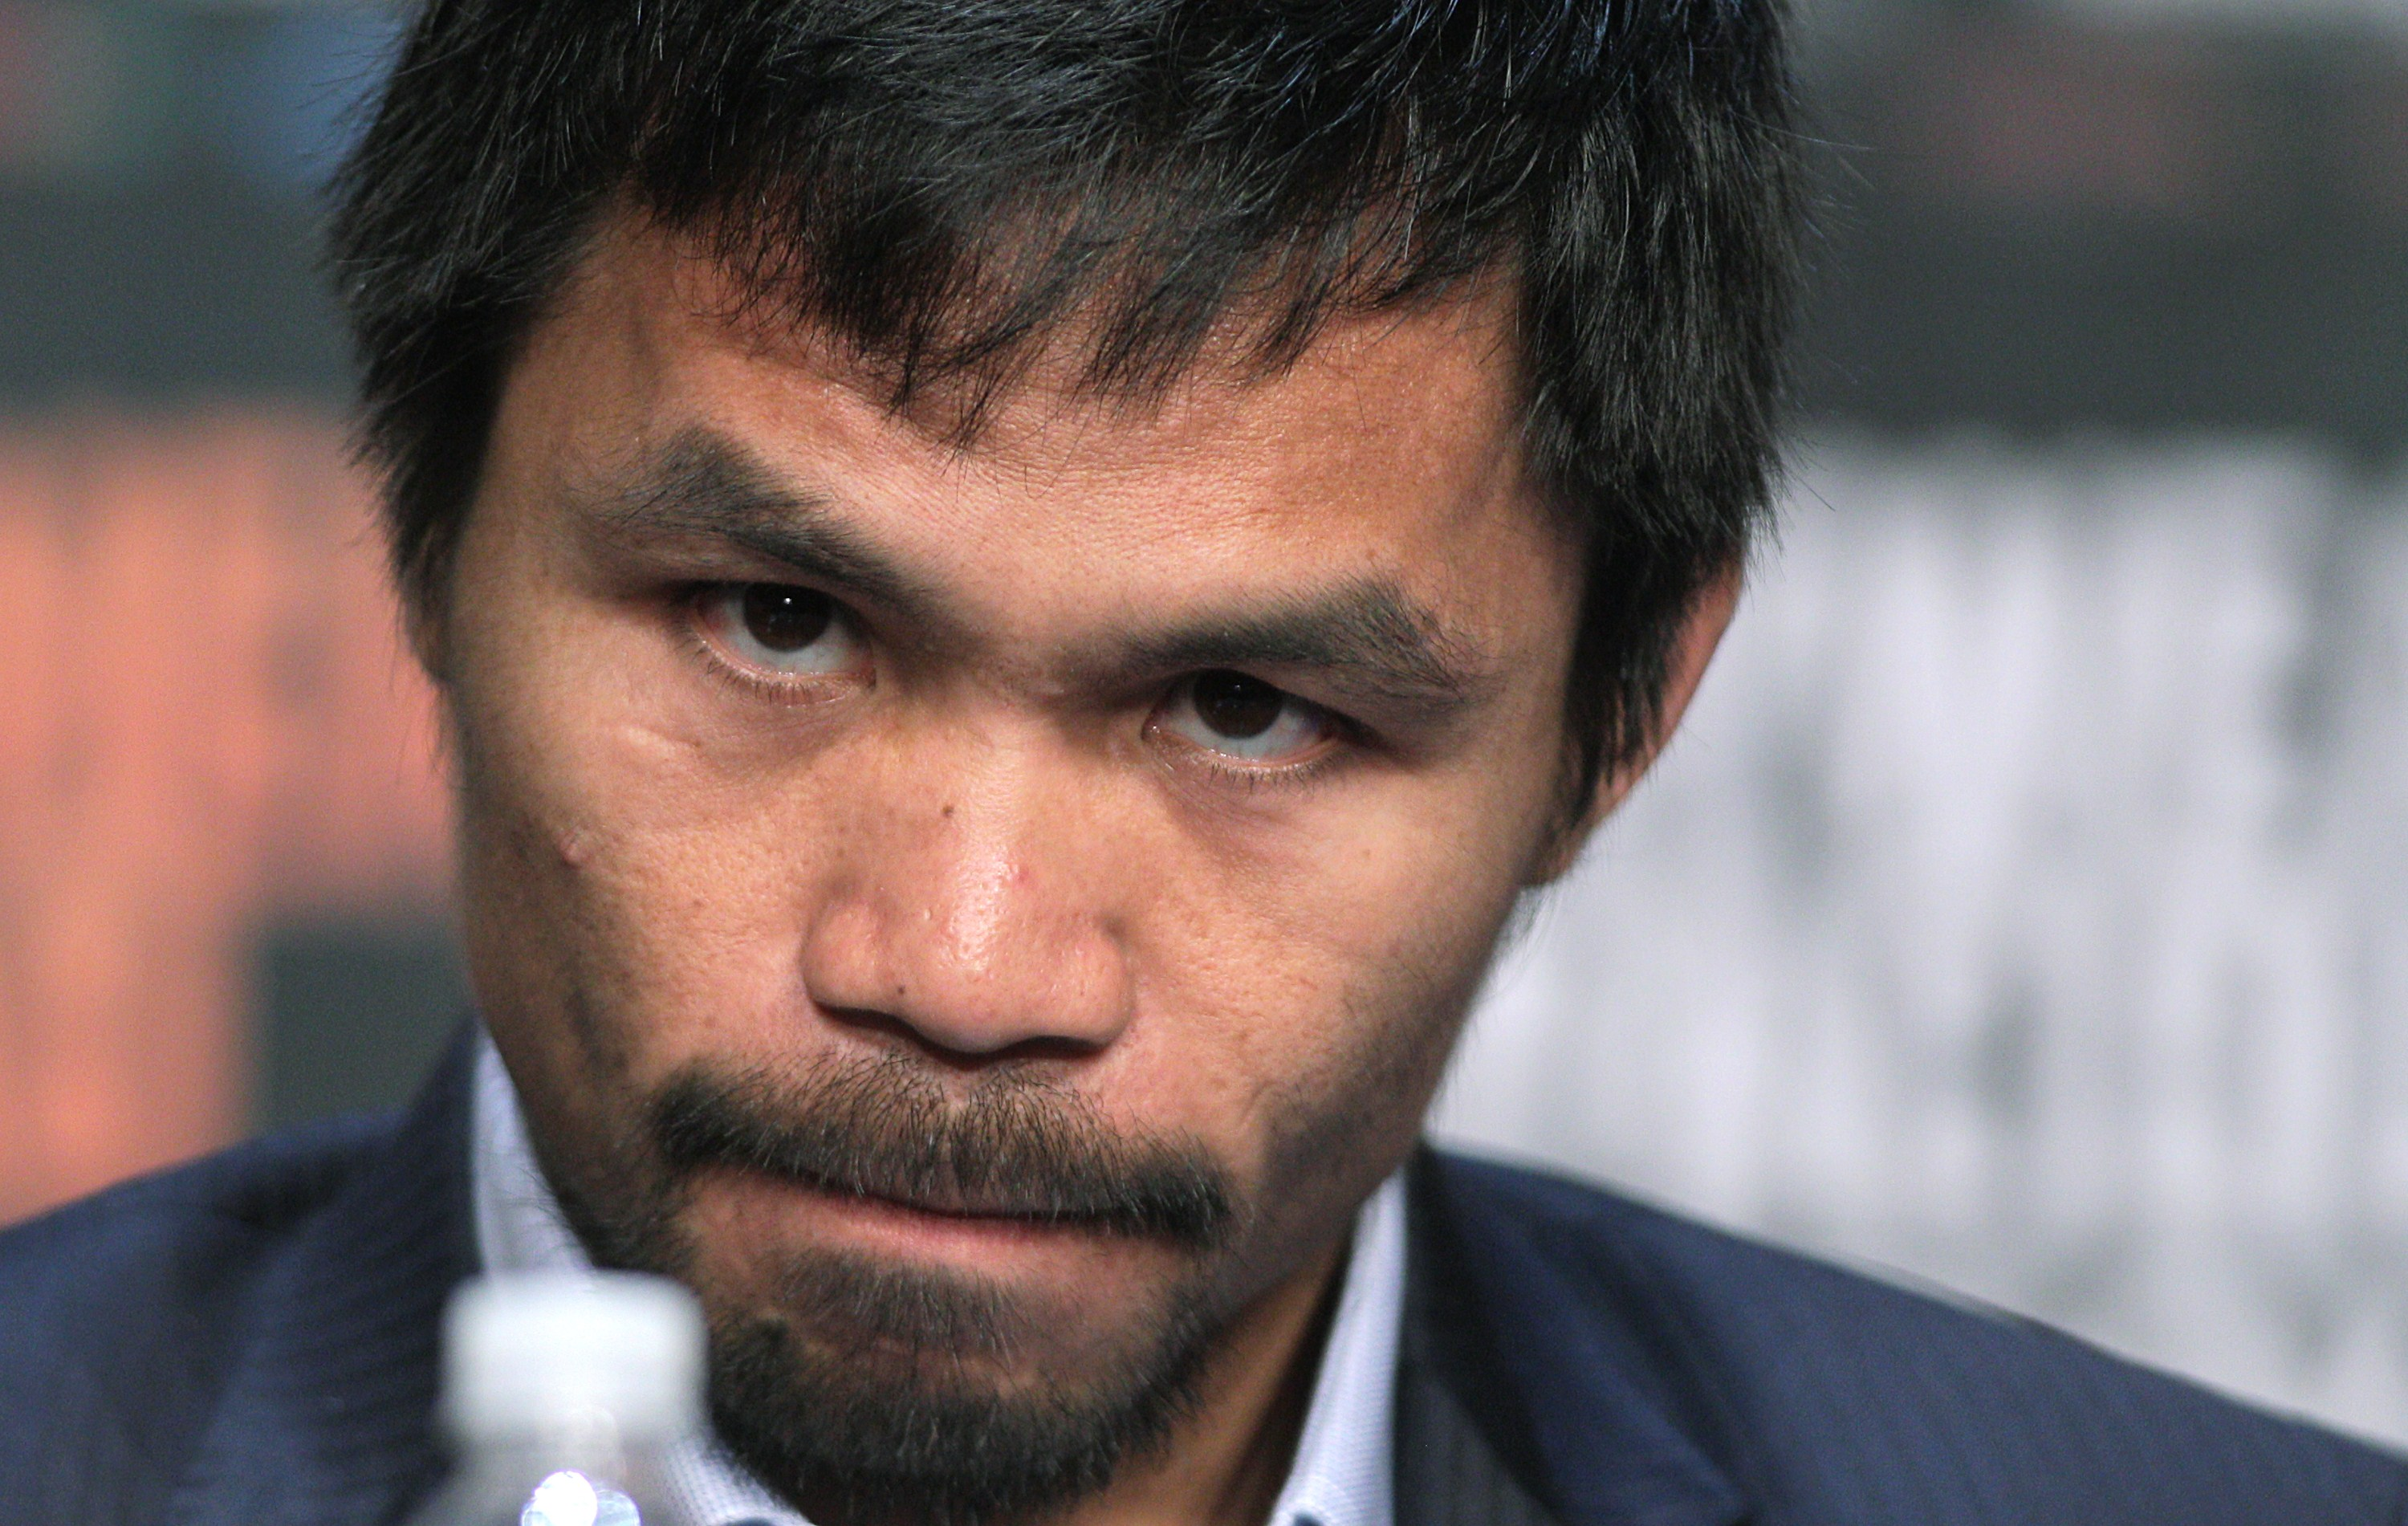 WBO welterweight champion Manny Pacquiao  listens during a news conference at the KA Theatre at MGM Grand Hotel & Casino on April 29, 2015 in Las Vegas, Nevada.